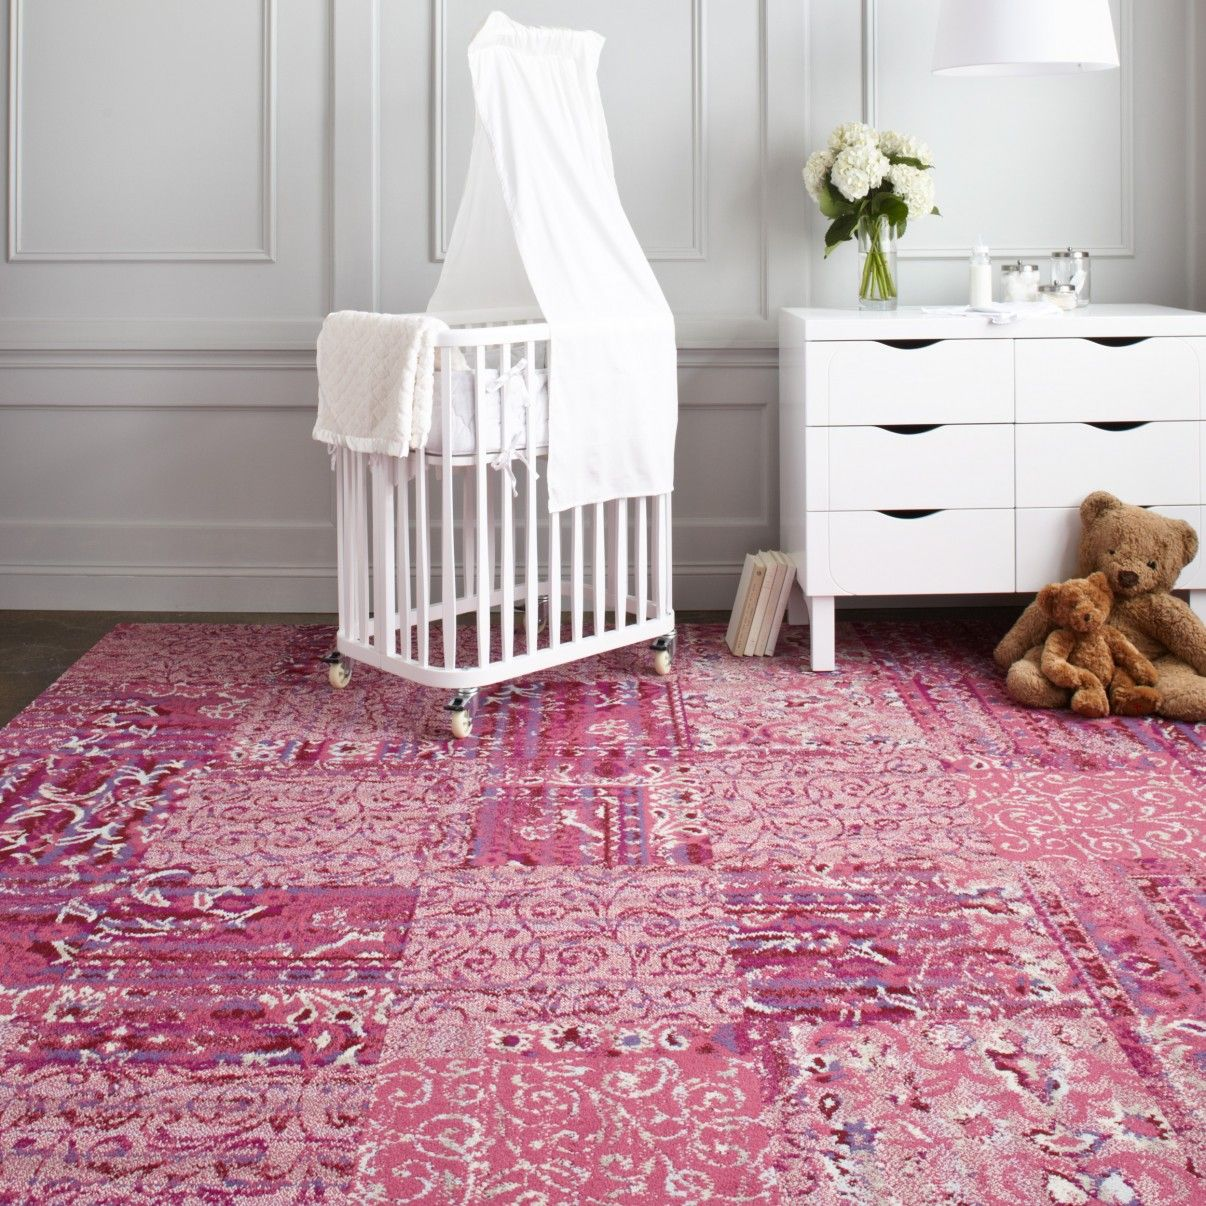 flor reoriented carpet tiles in fab mix of pink patterns